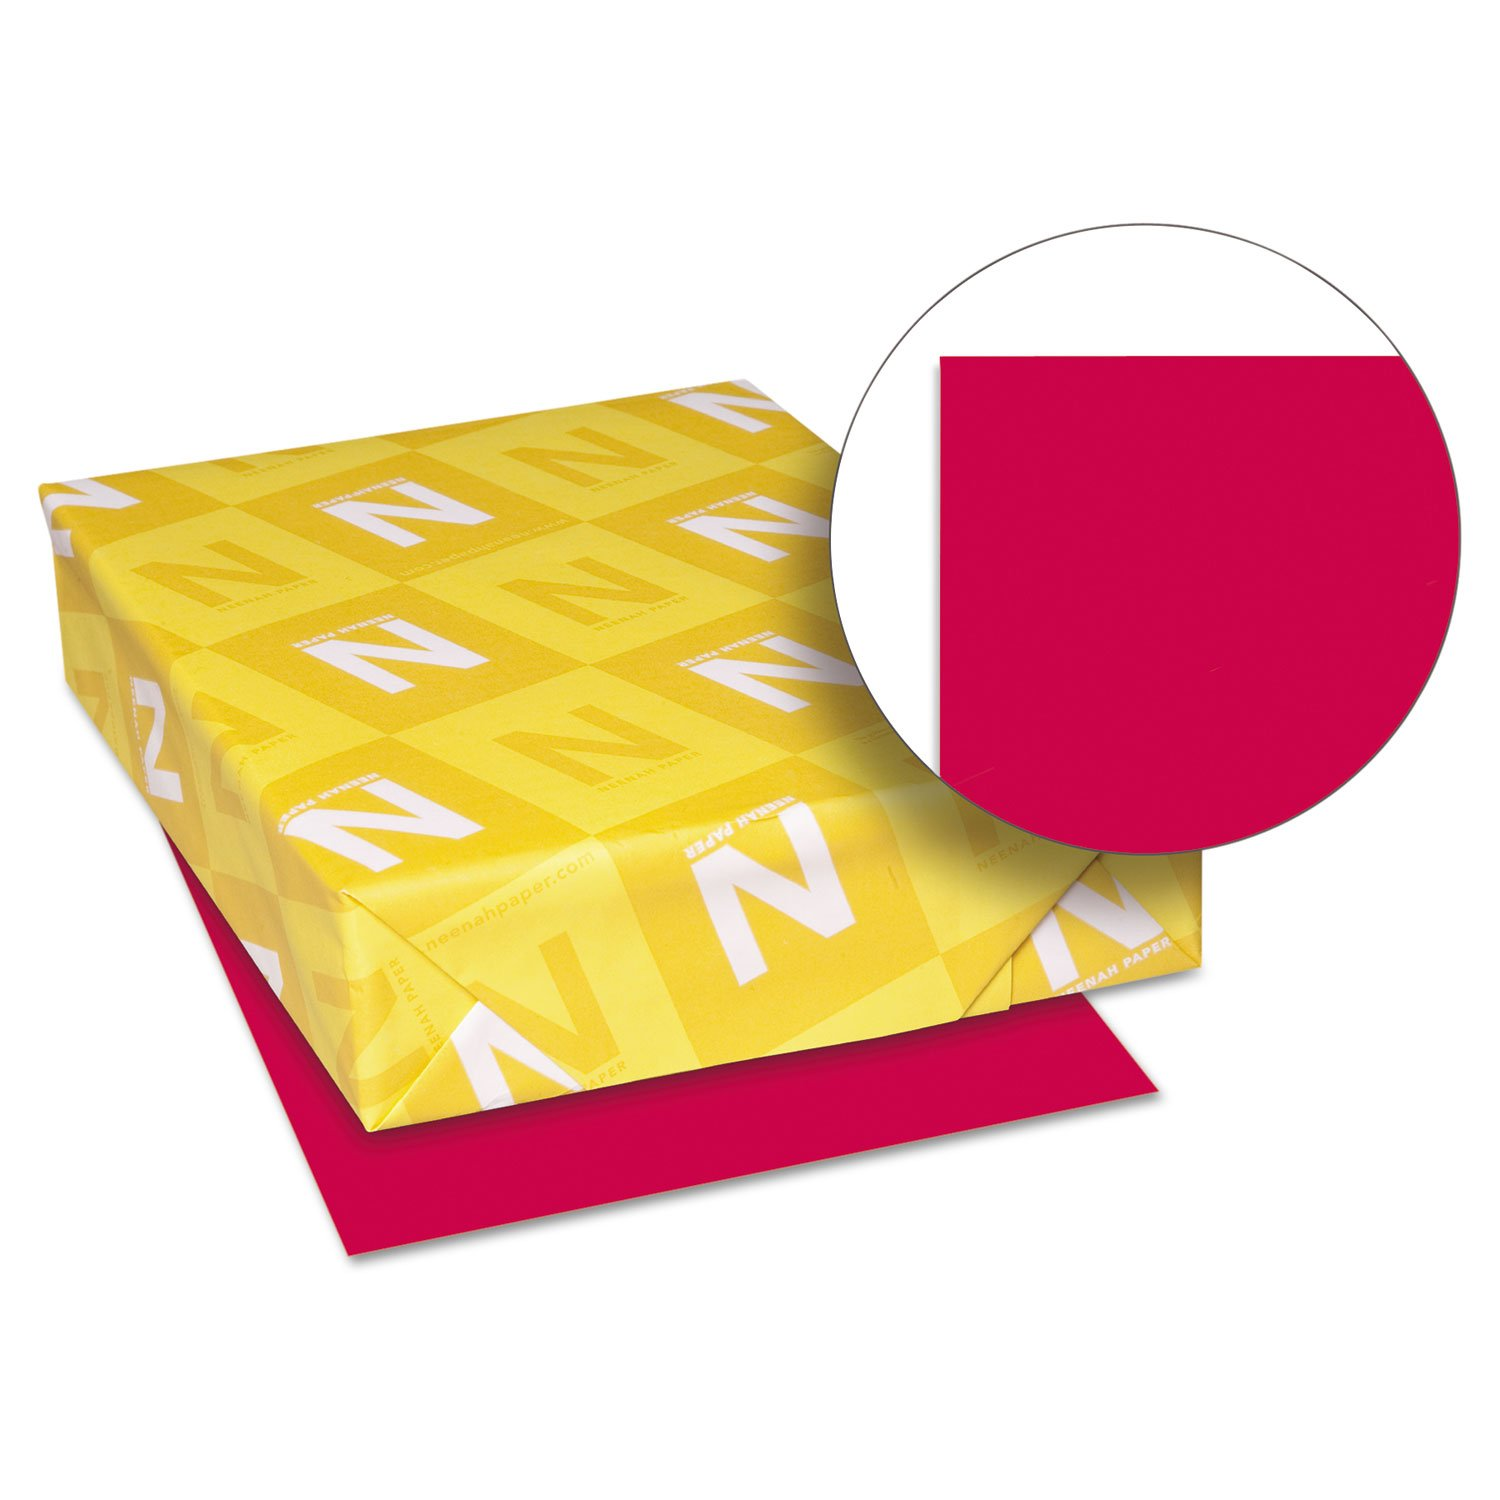 Wausau Papers 22553 Astrobrights Colored Paper 24lb 11 X 17 Re-entry Red 500 Sheets/ream by Wausau